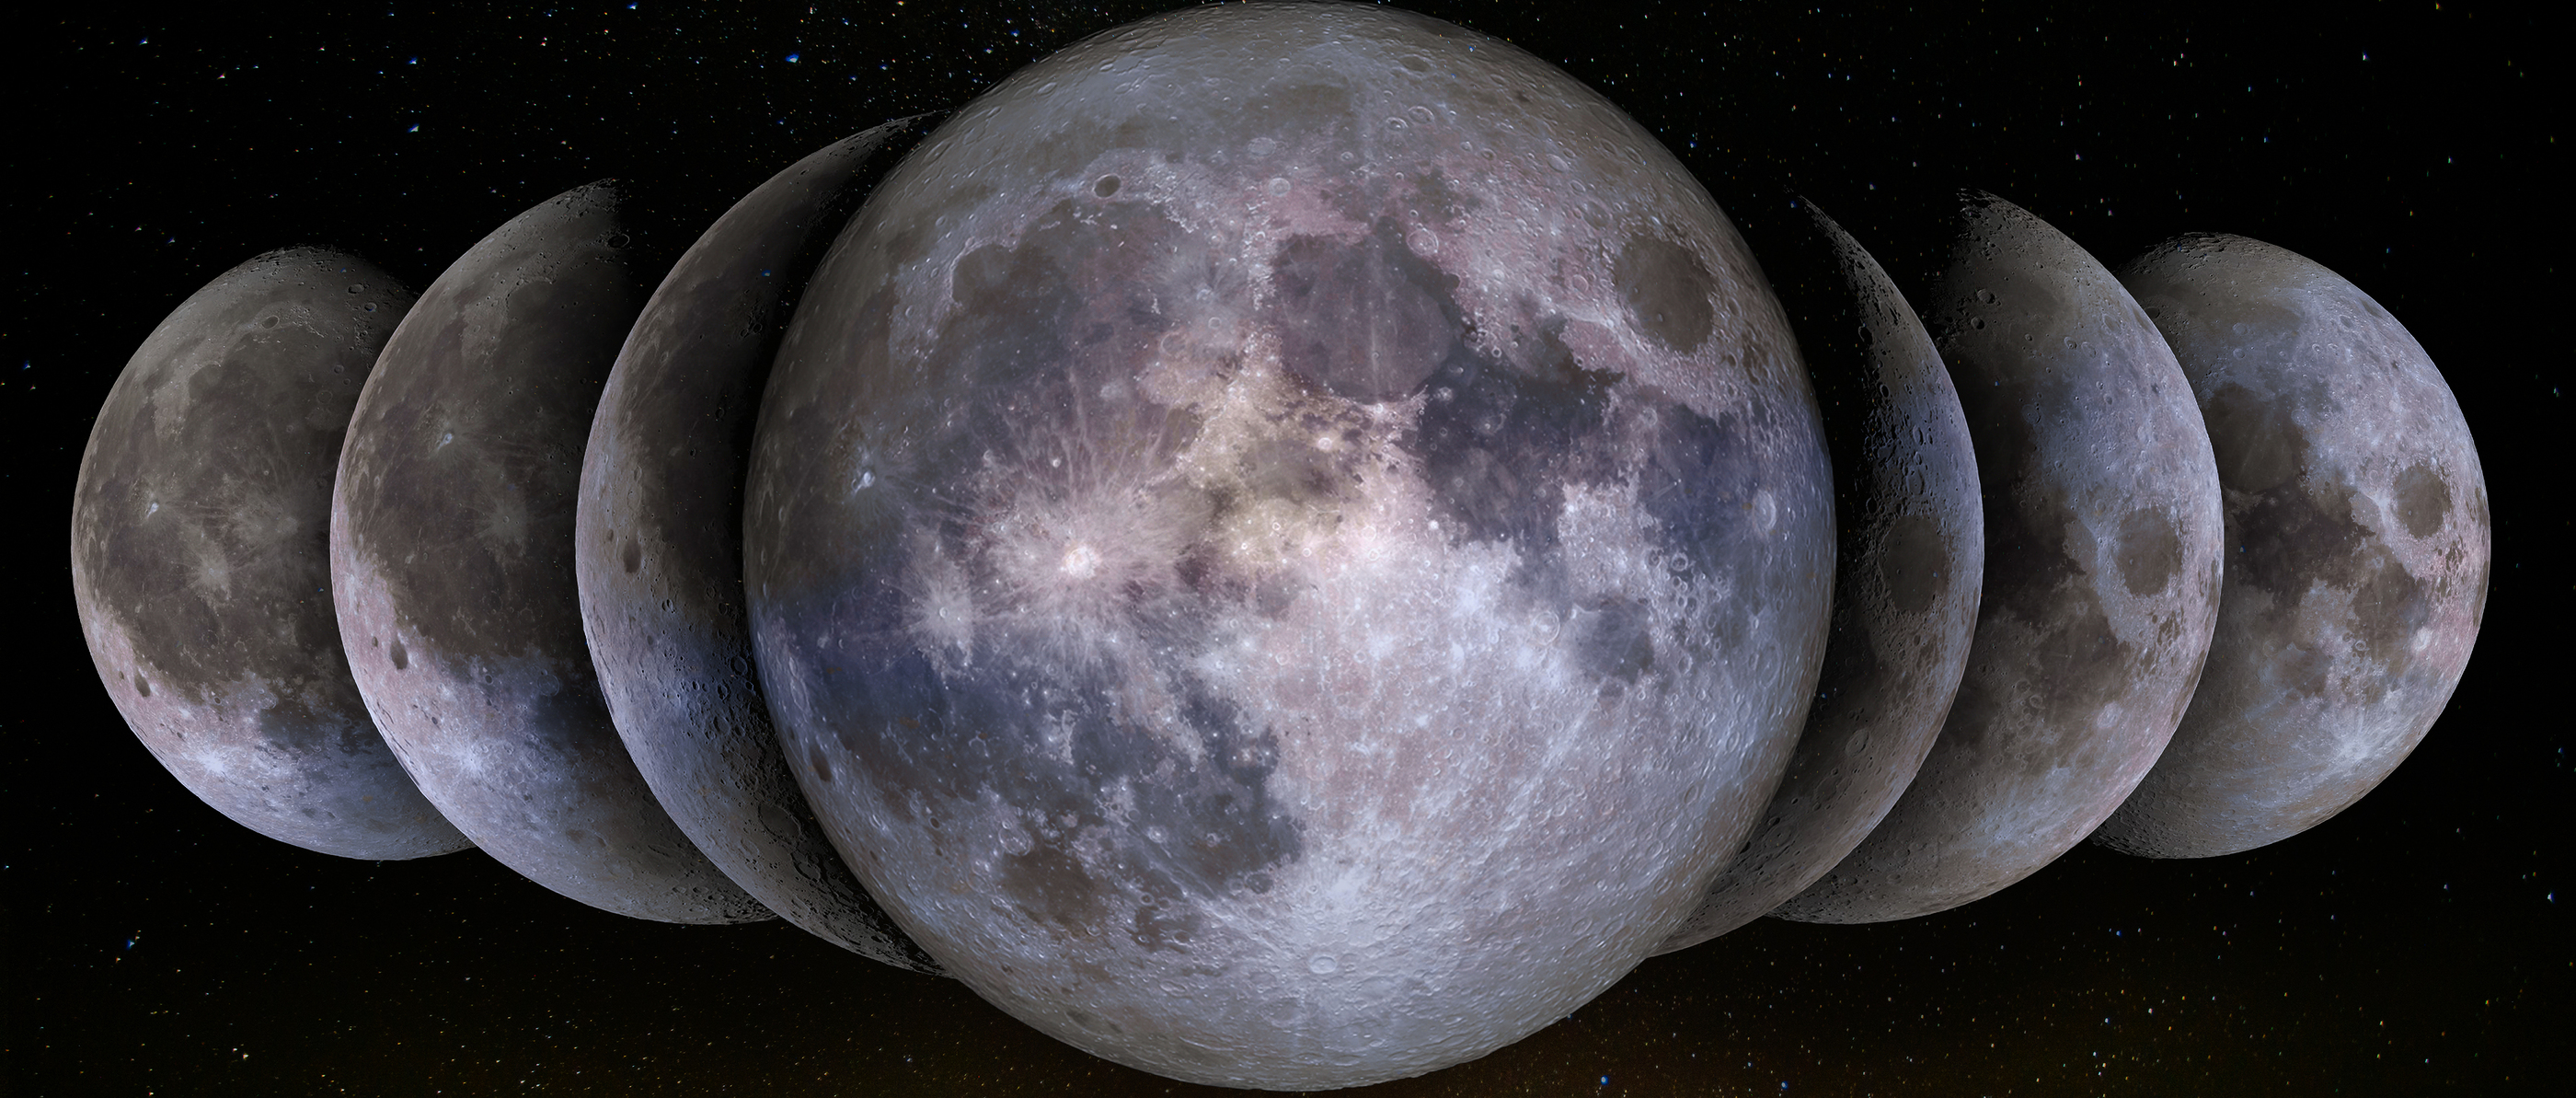 bigstock-Phases-Of-The-Moon-Simultaneou-